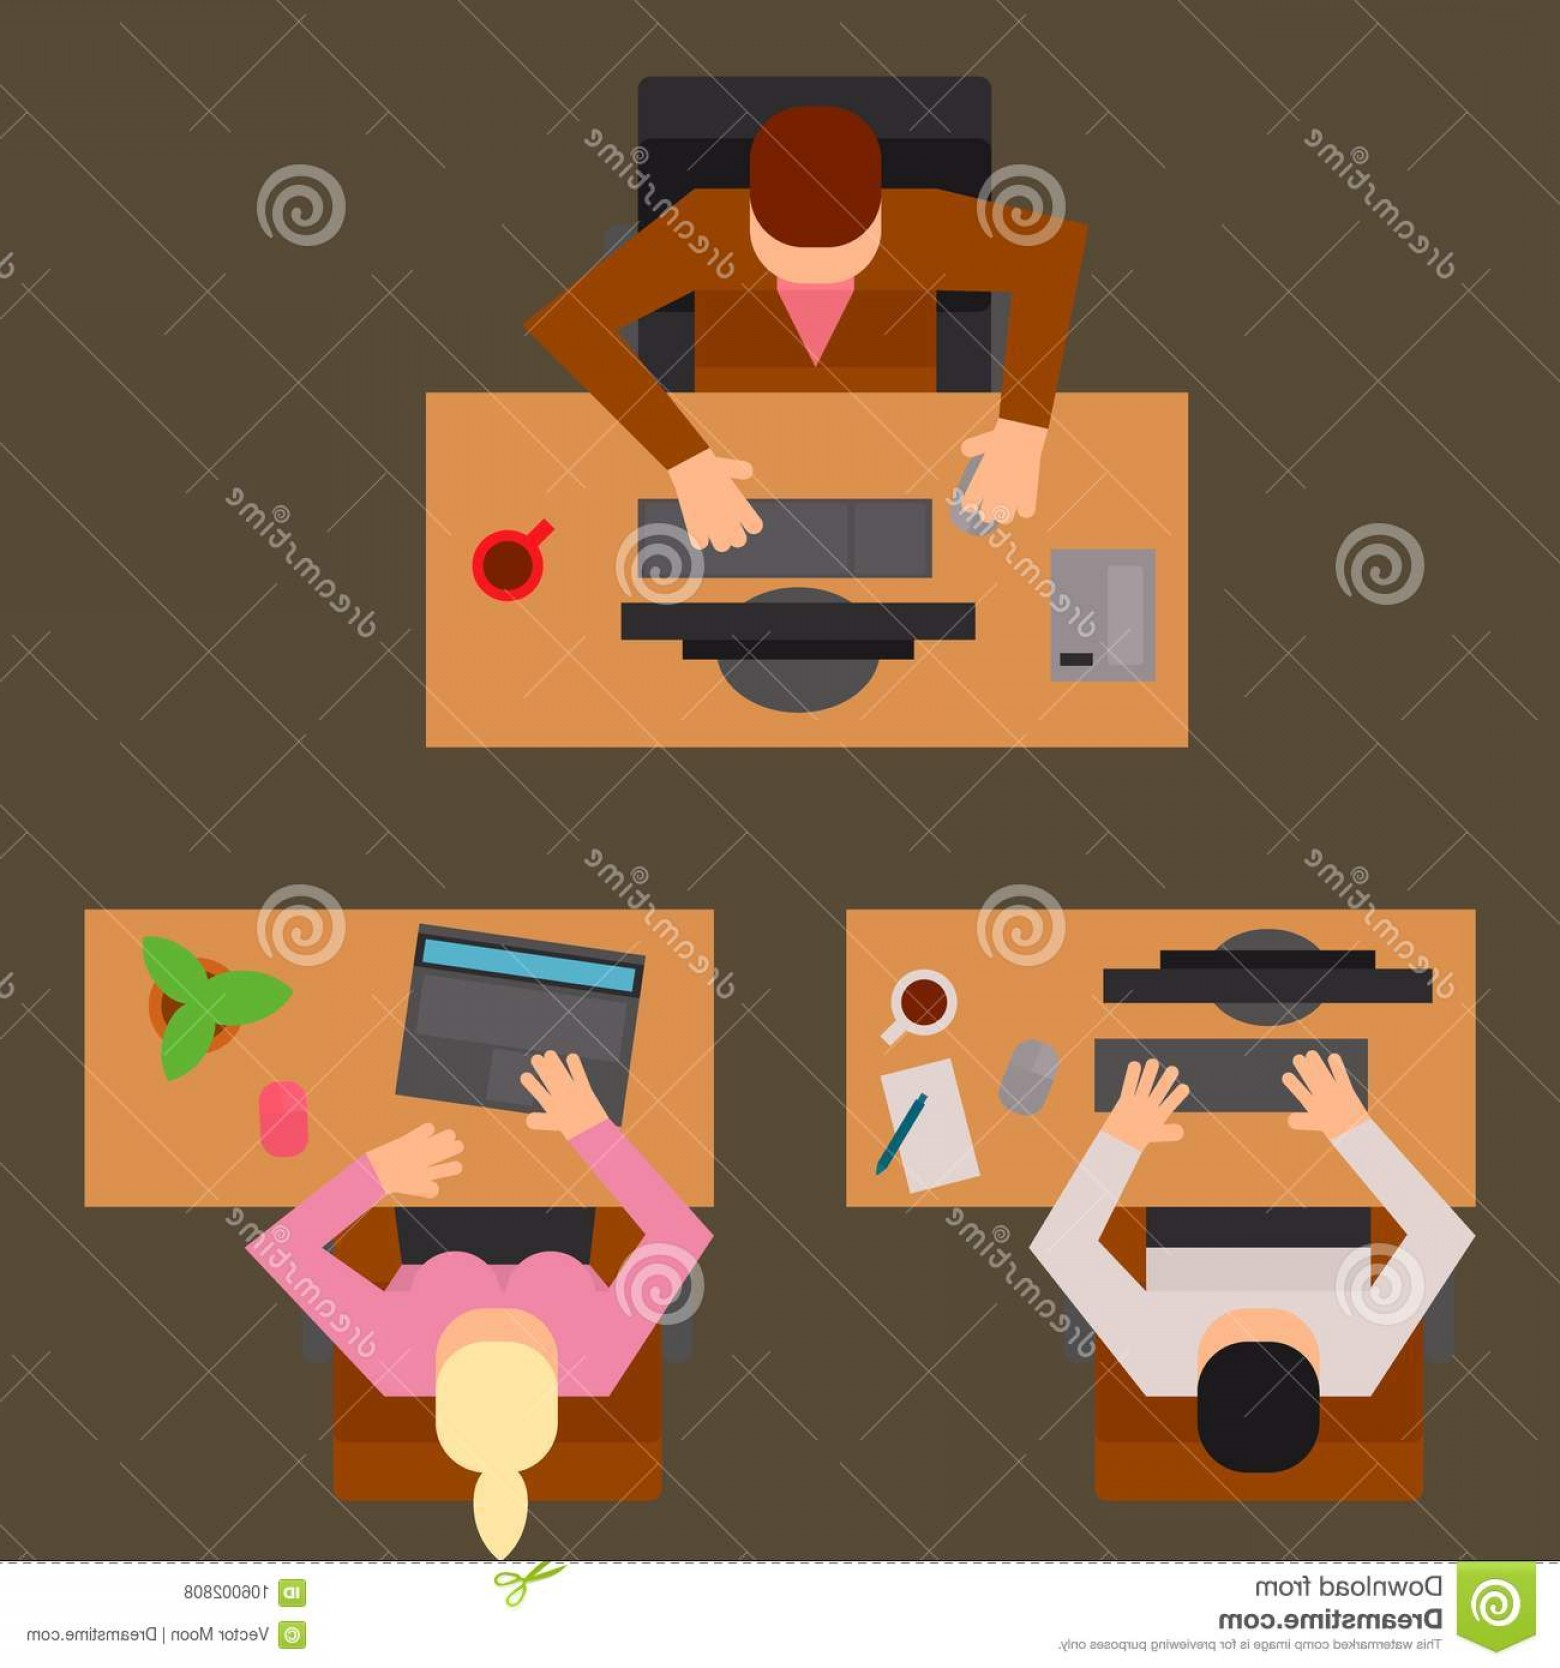 Happy Workplace Anniversary Vector: Workplace Office Tables Vector Business People Team Work Process Office Concept Web Modern Worker Table Top View Flat Workplace Image